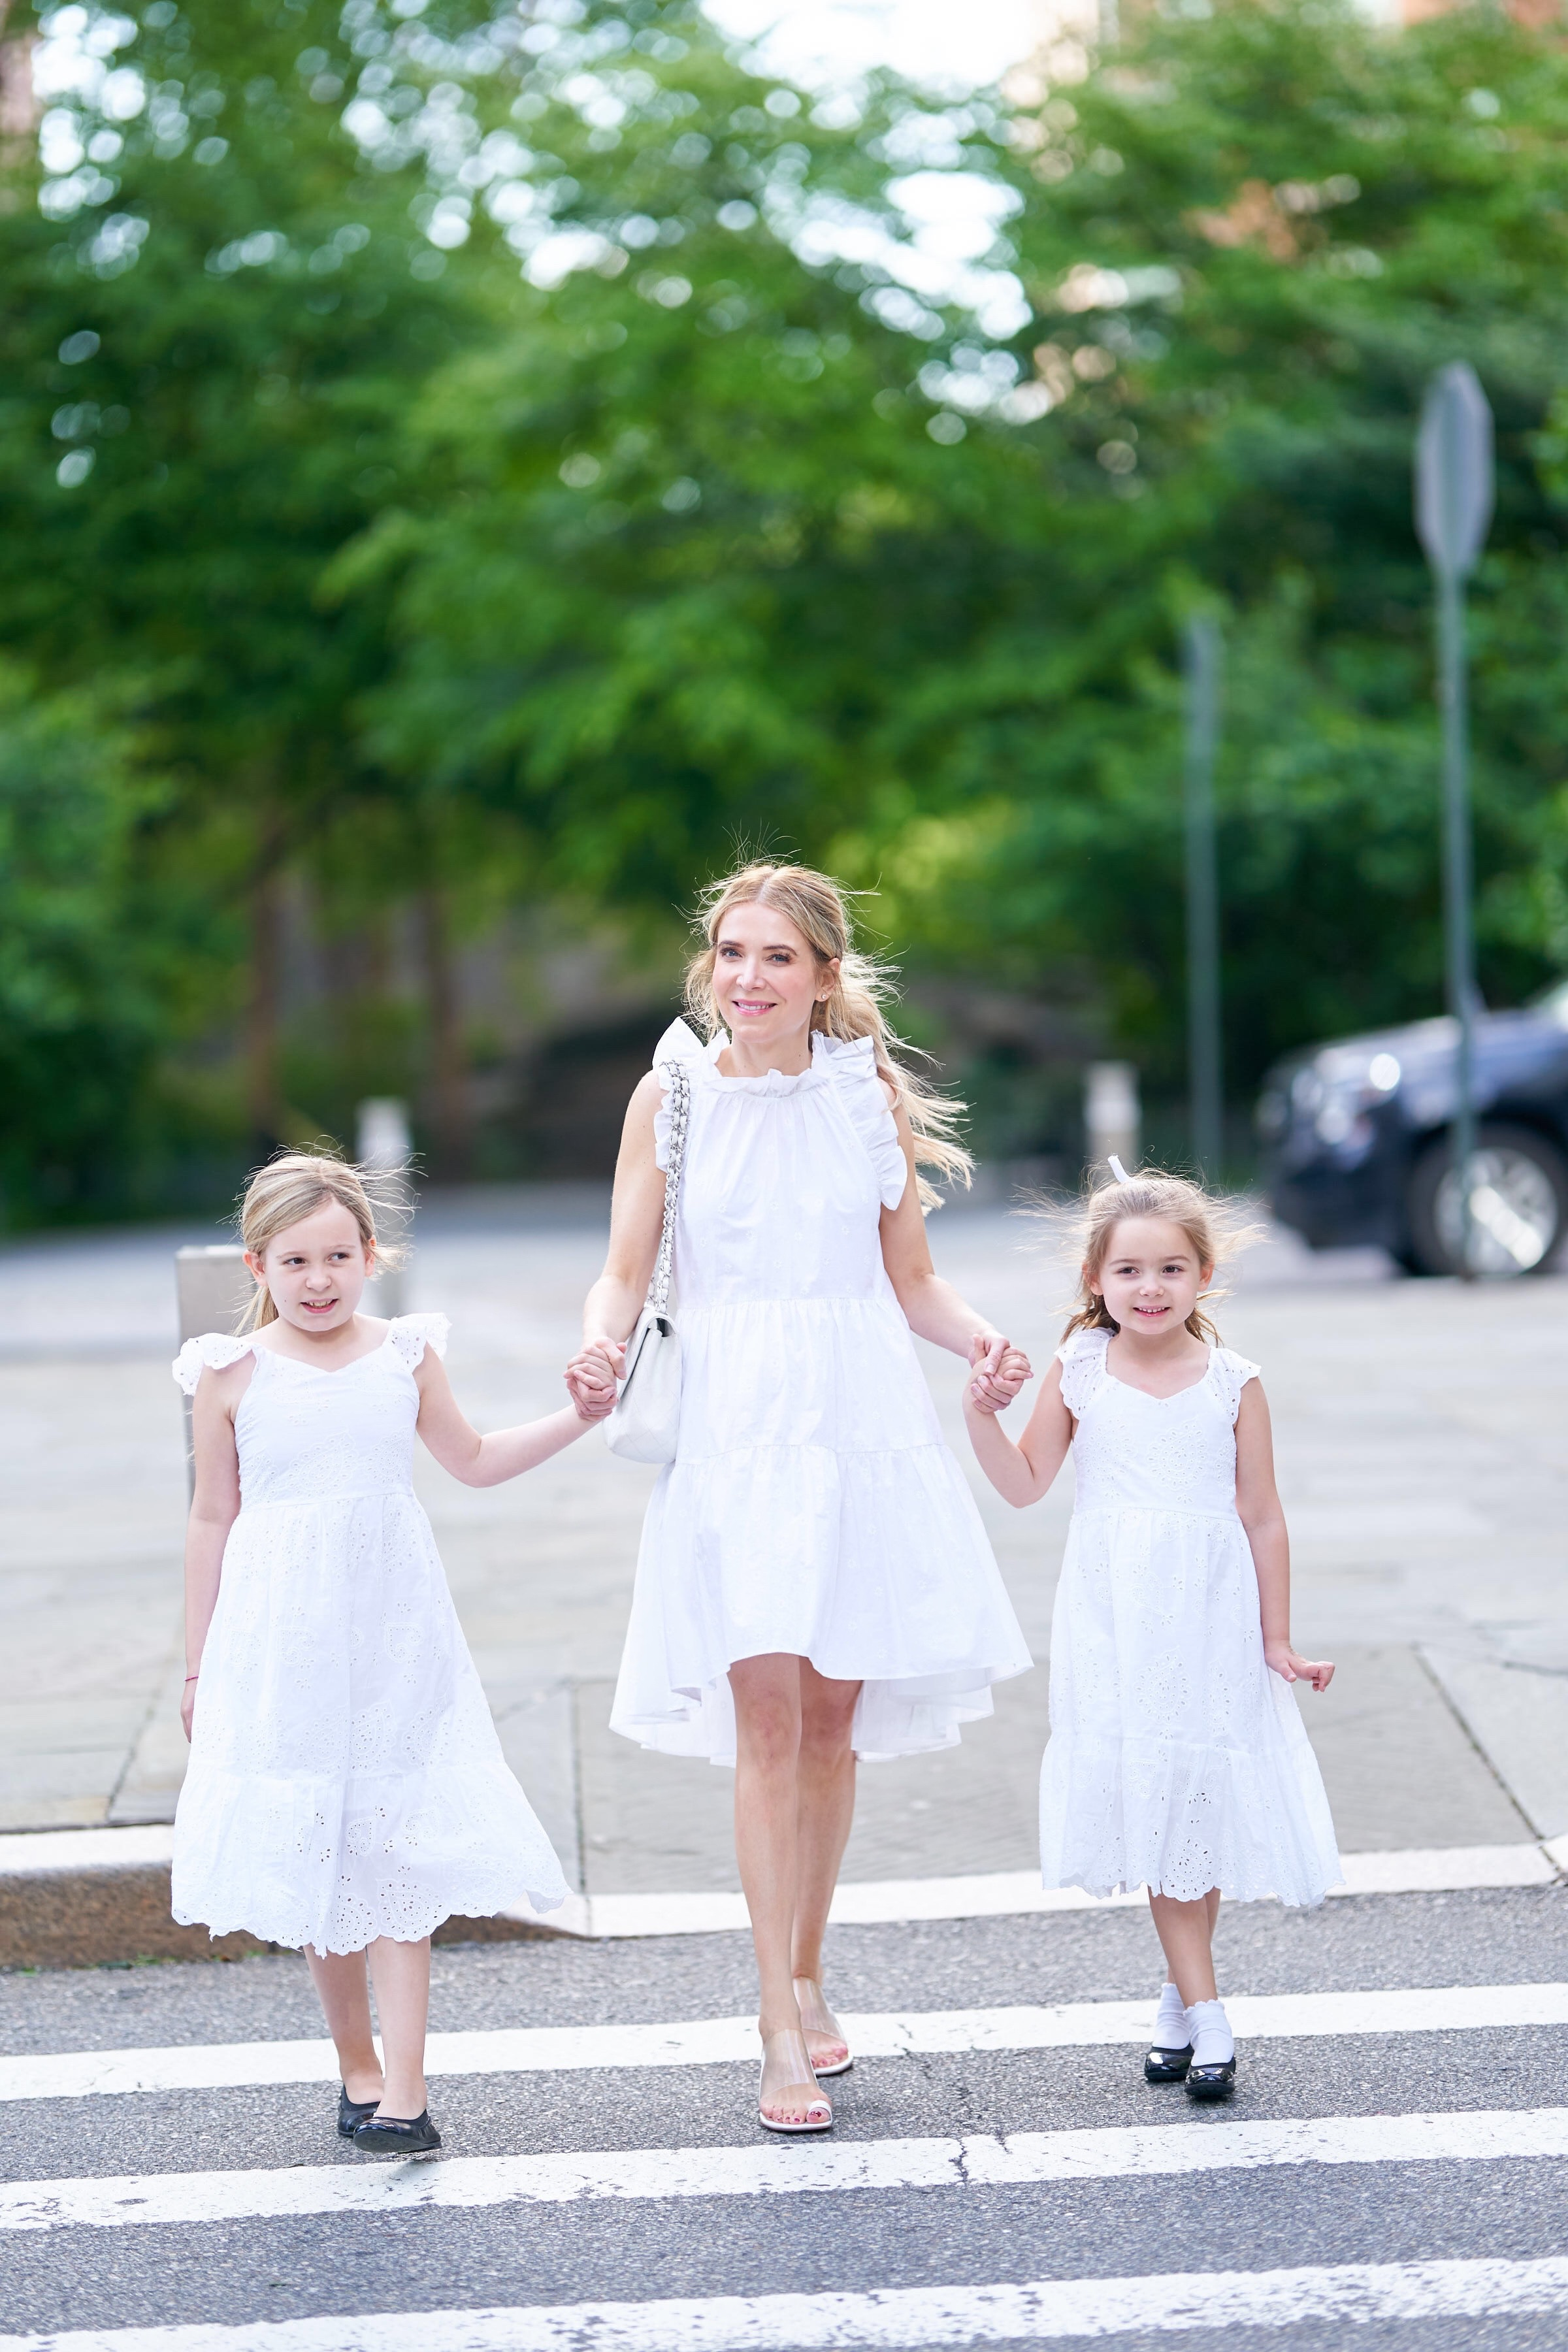 About the Outfits, matching dresses, Mommy daughter dresses, white dresses, www.abouttheoutfits.com